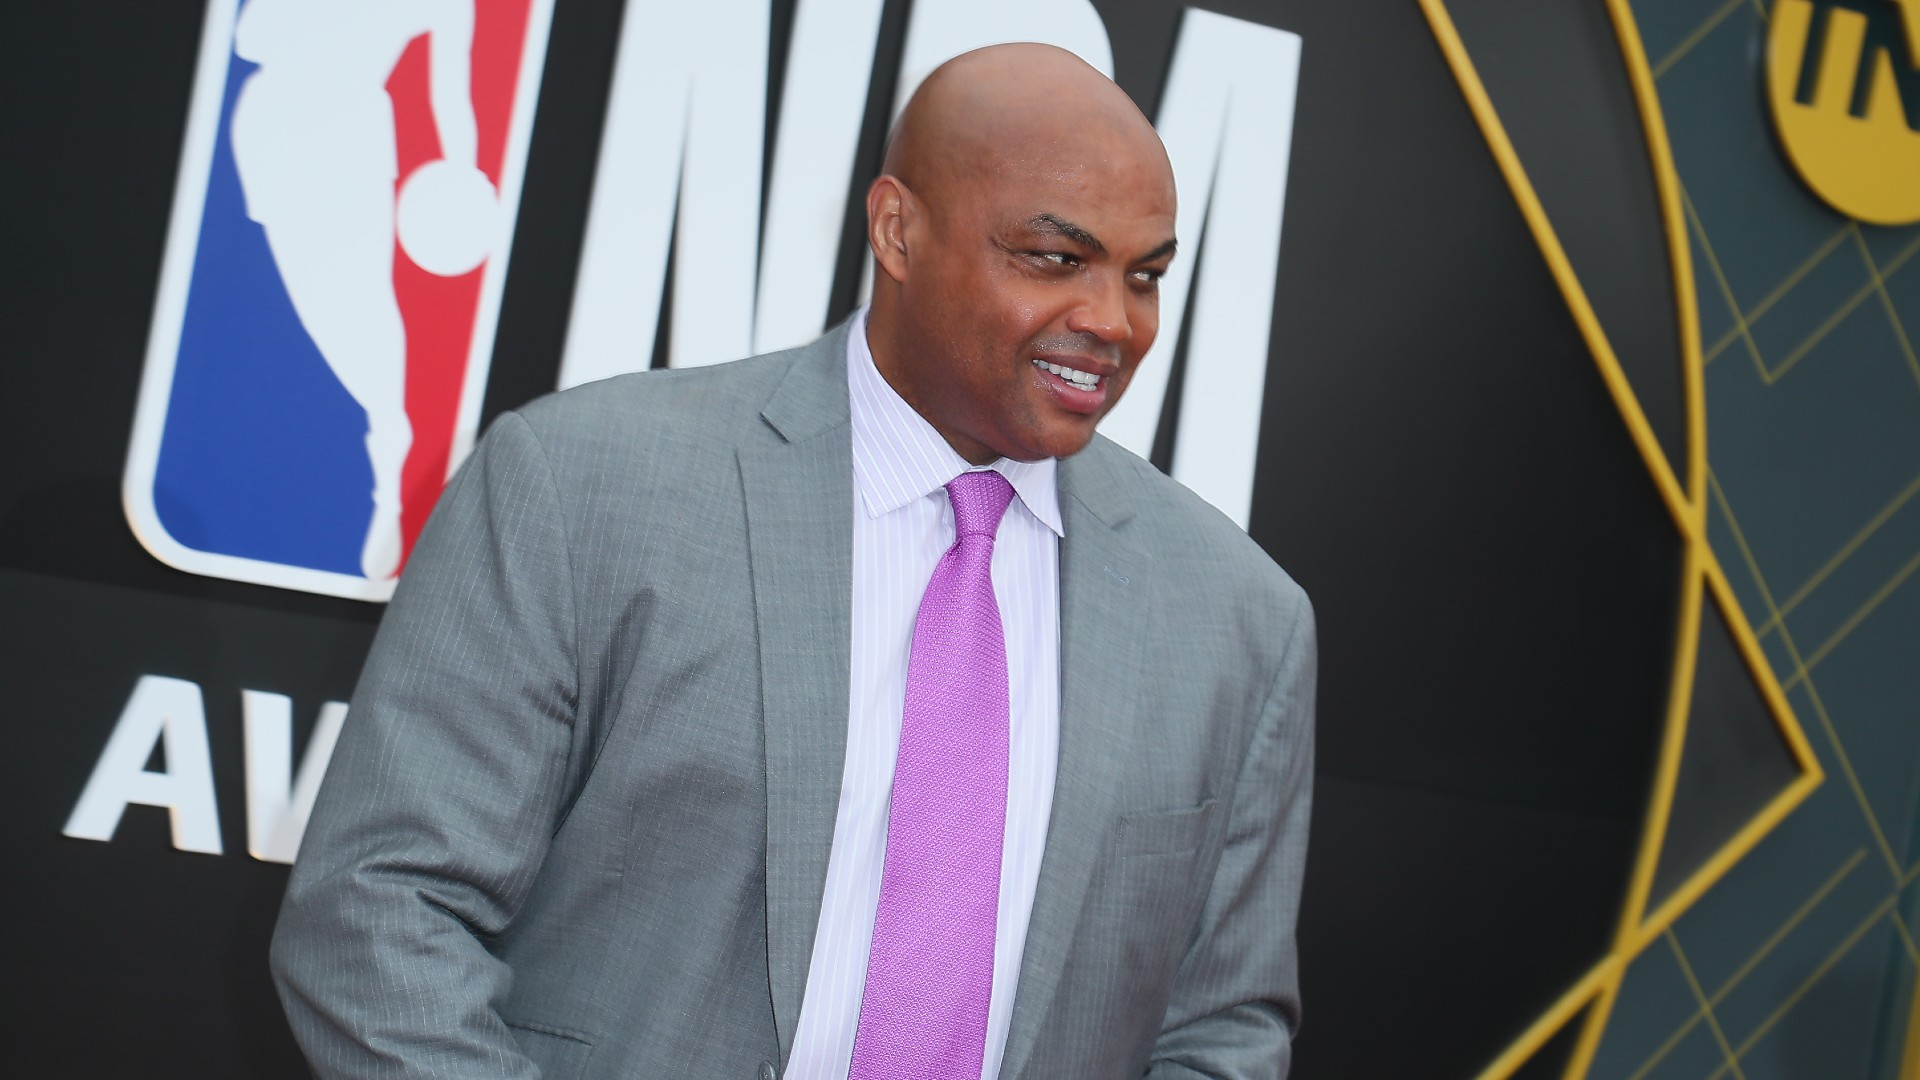 Charles Barkley Says He Lost $100K on Falcons' Super Bowl Loss to Patriots article feature image